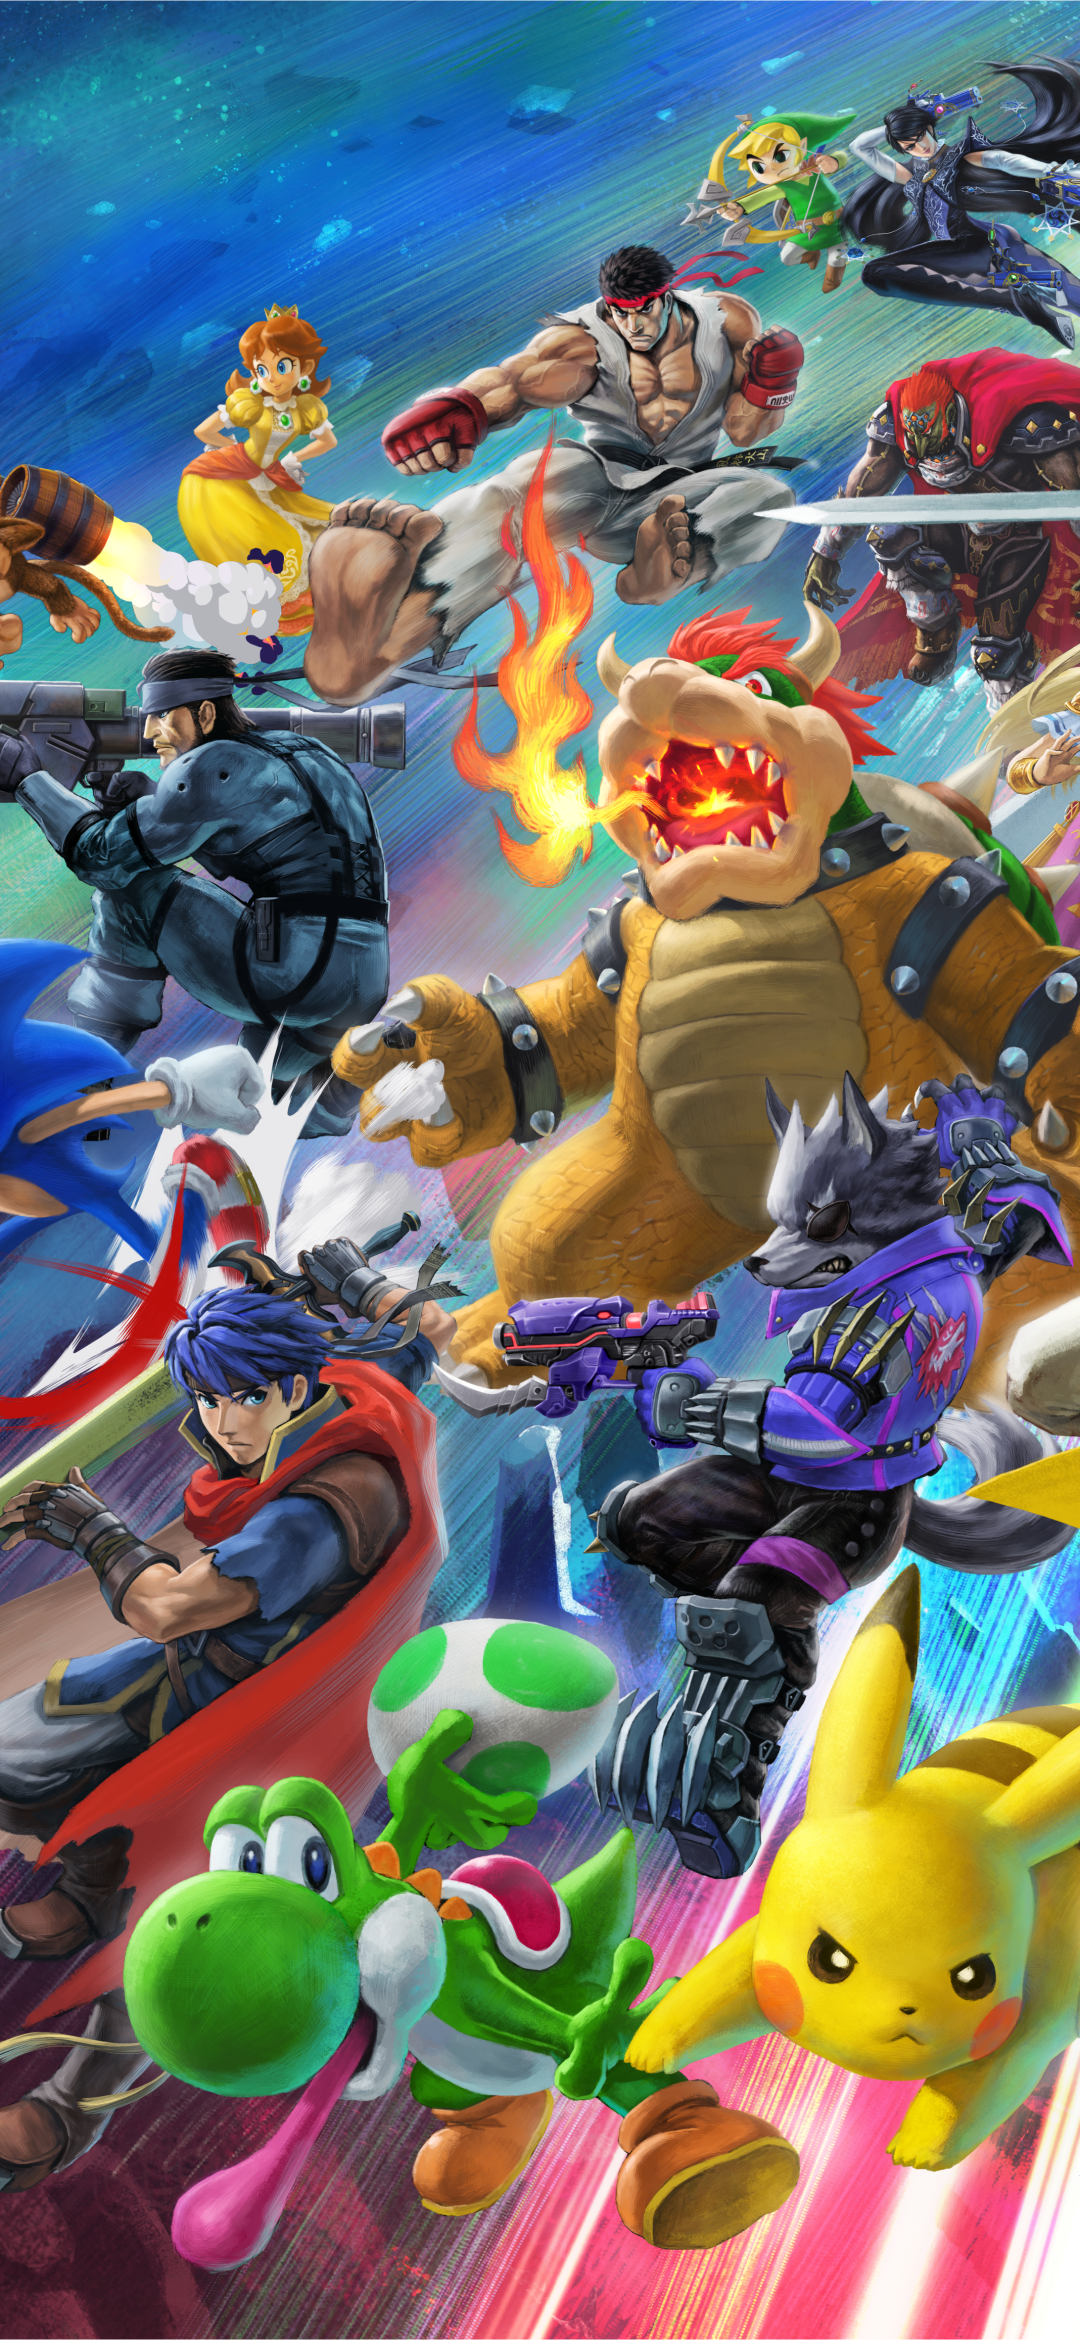 Video Game Super Smash Bros Ultimate 828x1792 Wallpaper Id